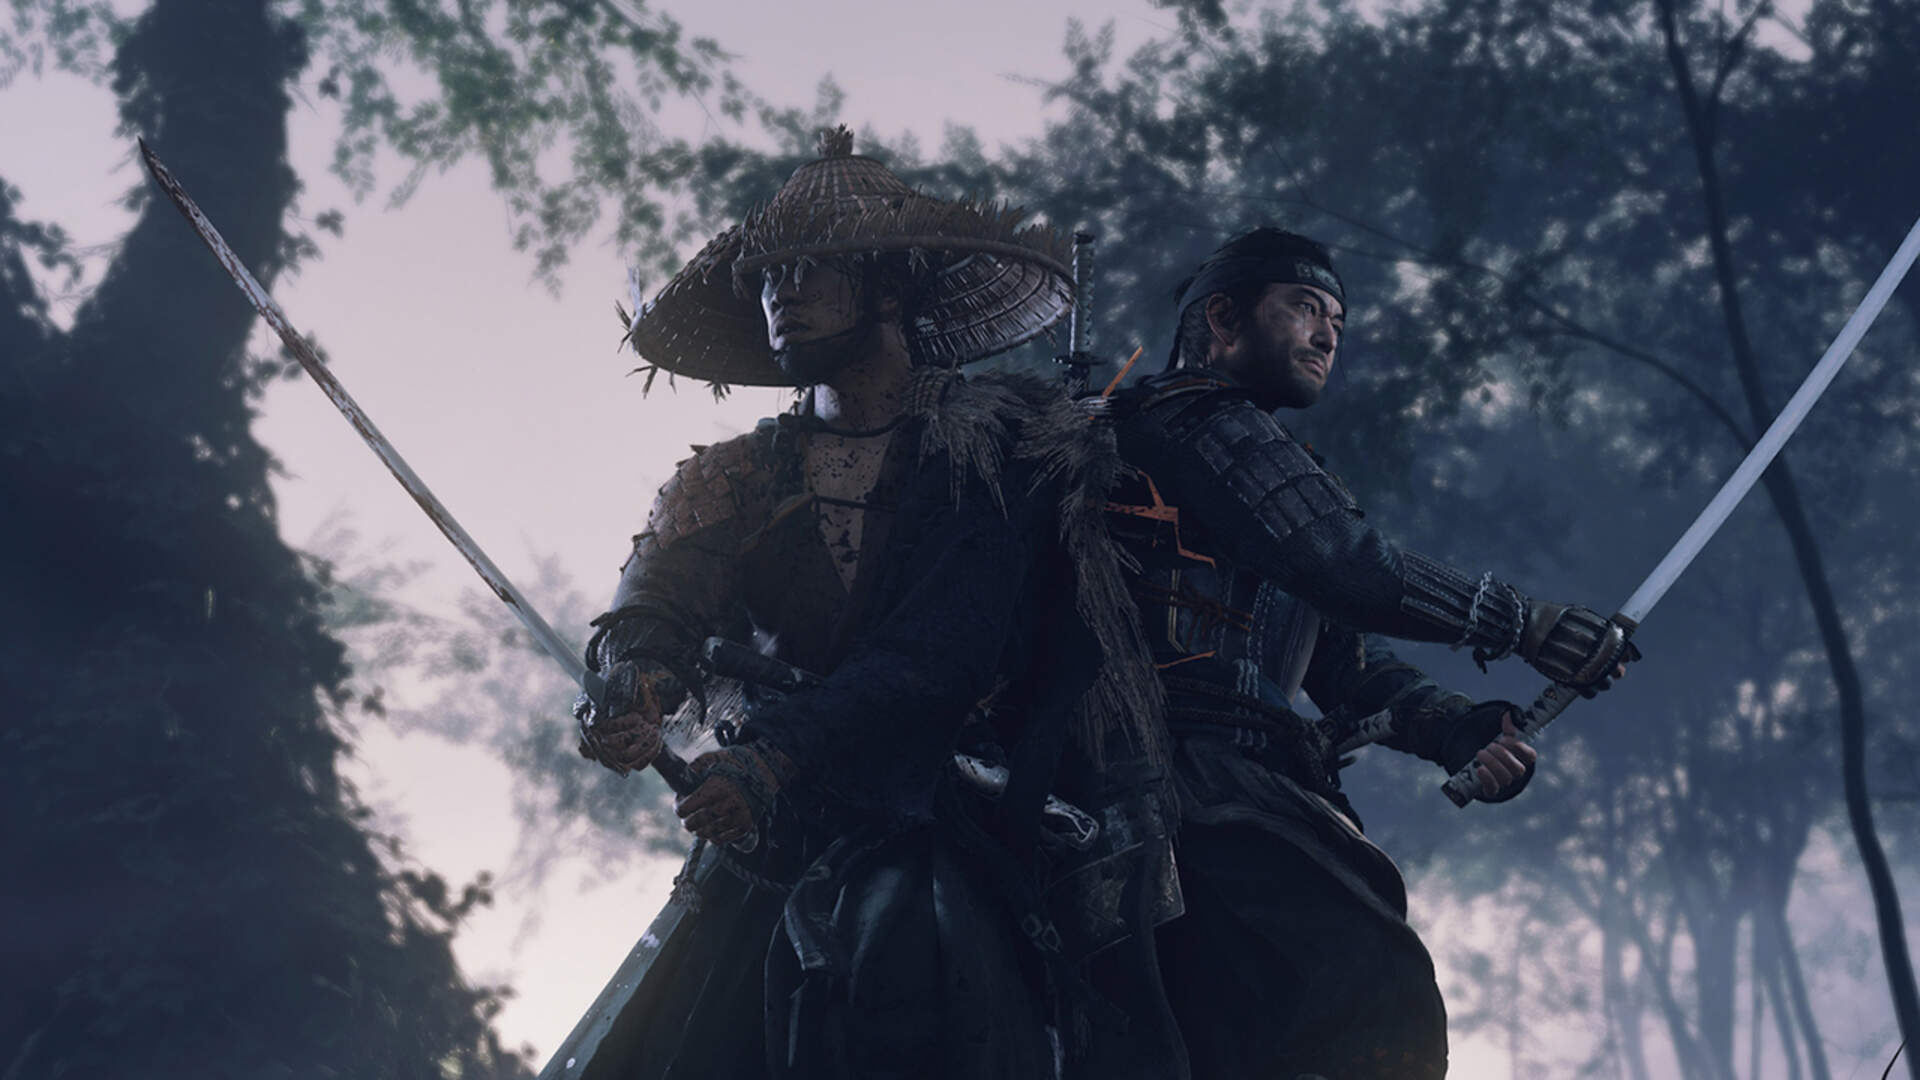 Ghost of Tsushima Offers Lots of Flexibility Between Samurai and Ghost Abilities, Sucker Punch Says